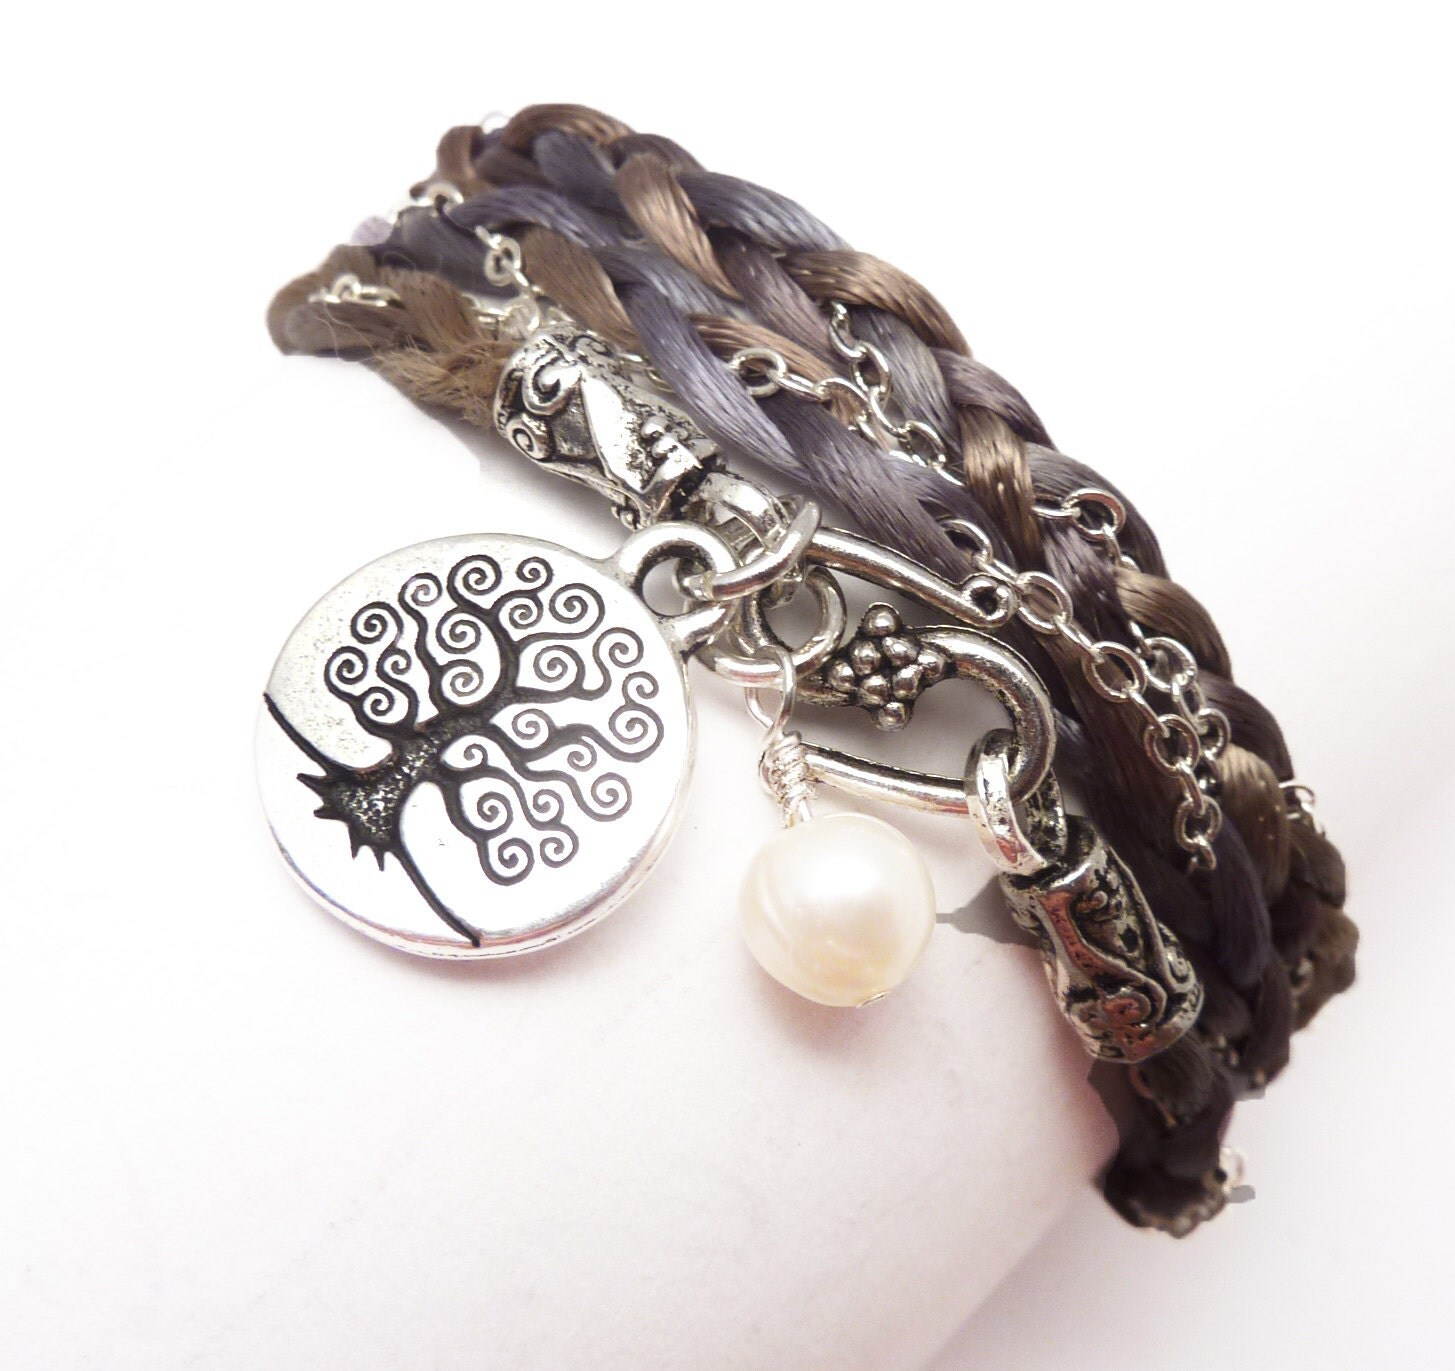 Wrap Bracelet Braided Satin and Chain with Tree of Life, Bat MItzvah jewelry,wrapped, wrapping,wrist wrap